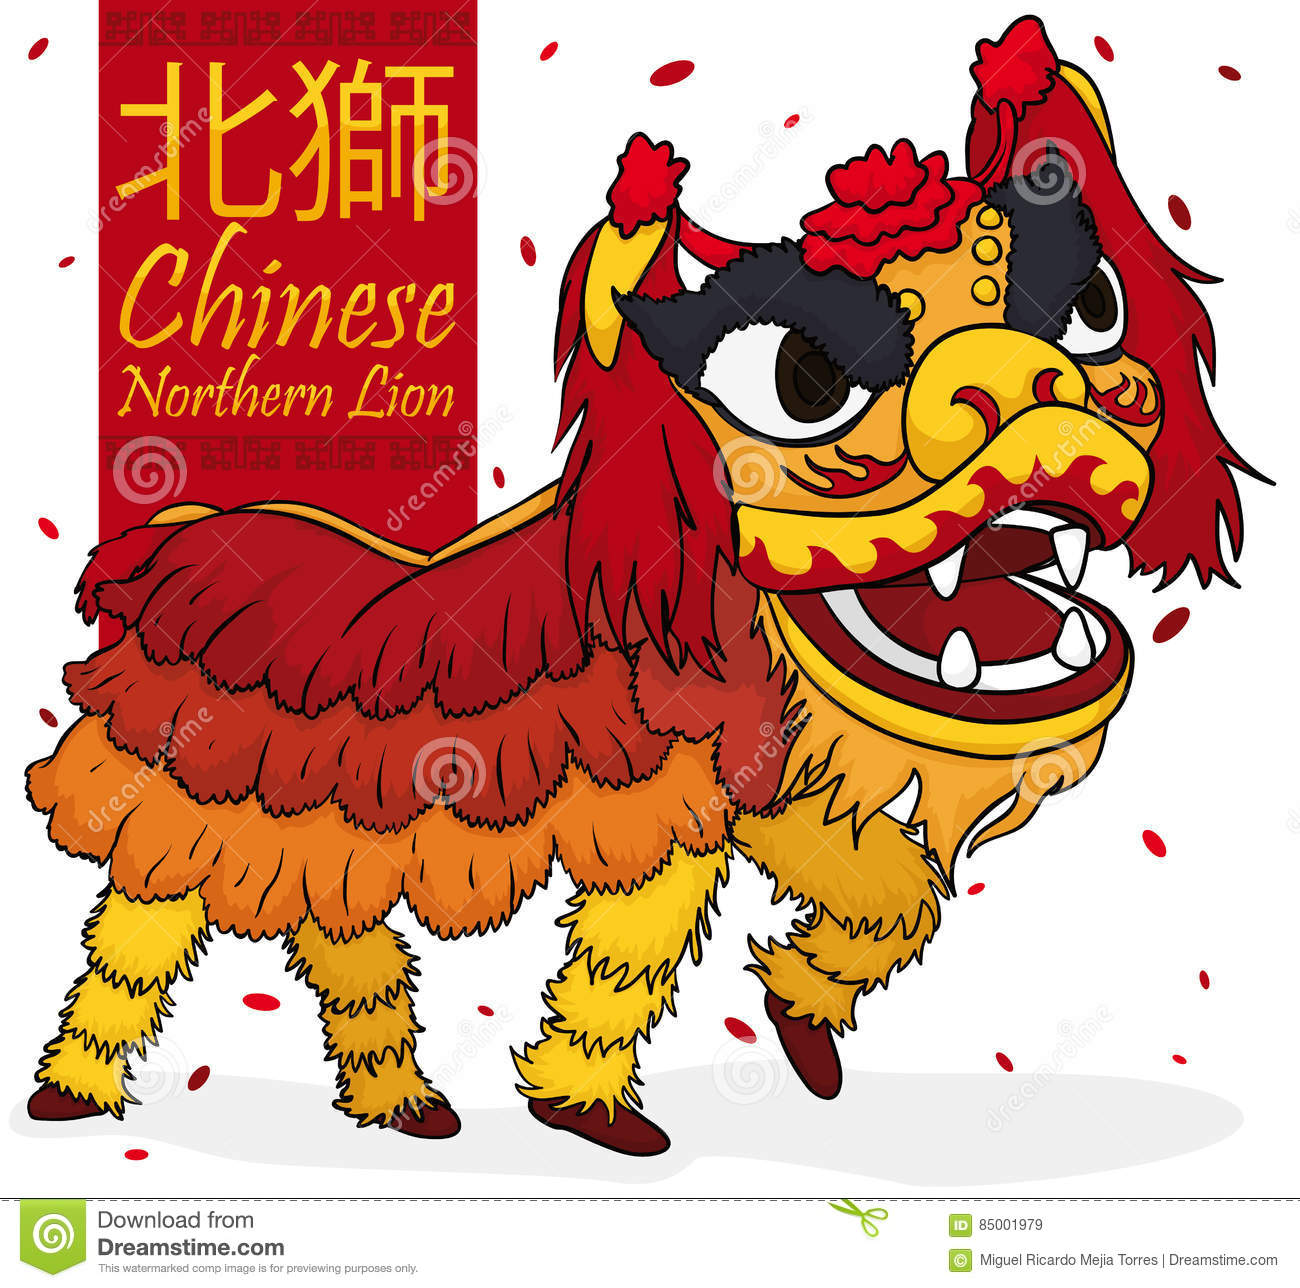 7c3aeee2b Poster with traditional lion dancers written in traditional Chinese  performing a display of Northern style with confetti.